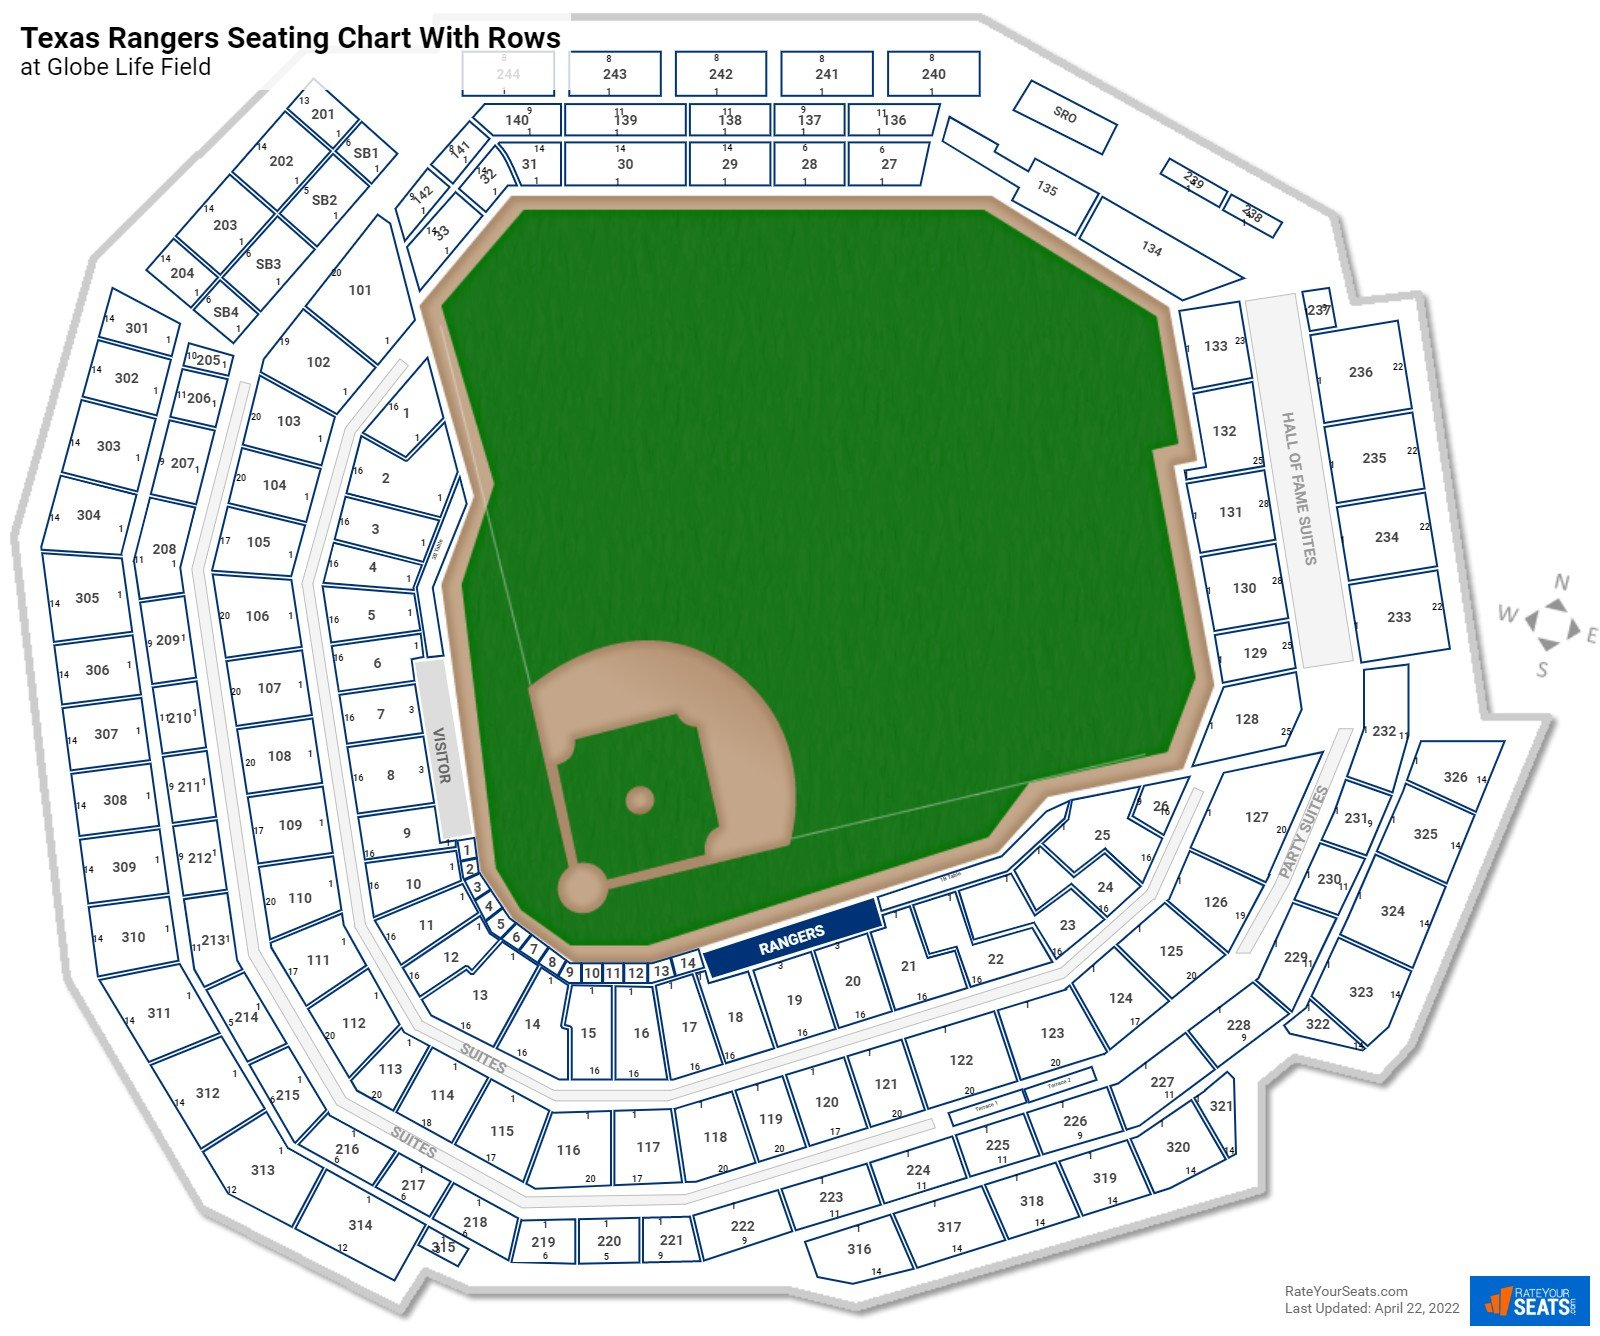 Globe Life Field seating chart with rows